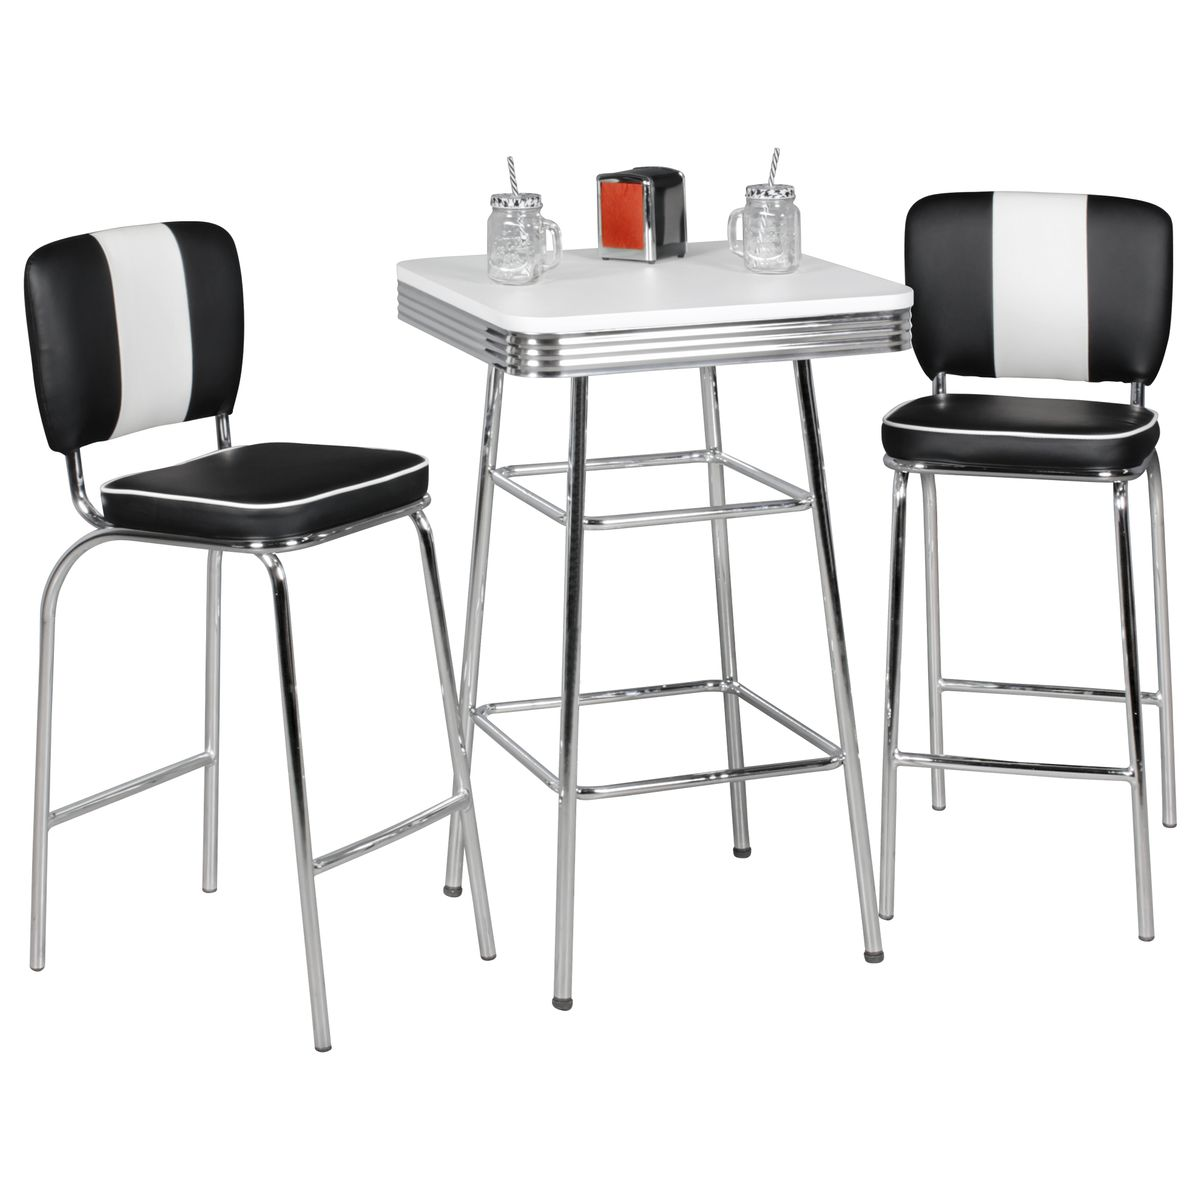 american diner bartisch wei stehtisch bistrotisch rund eckig usa retro tisch ebay. Black Bedroom Furniture Sets. Home Design Ideas